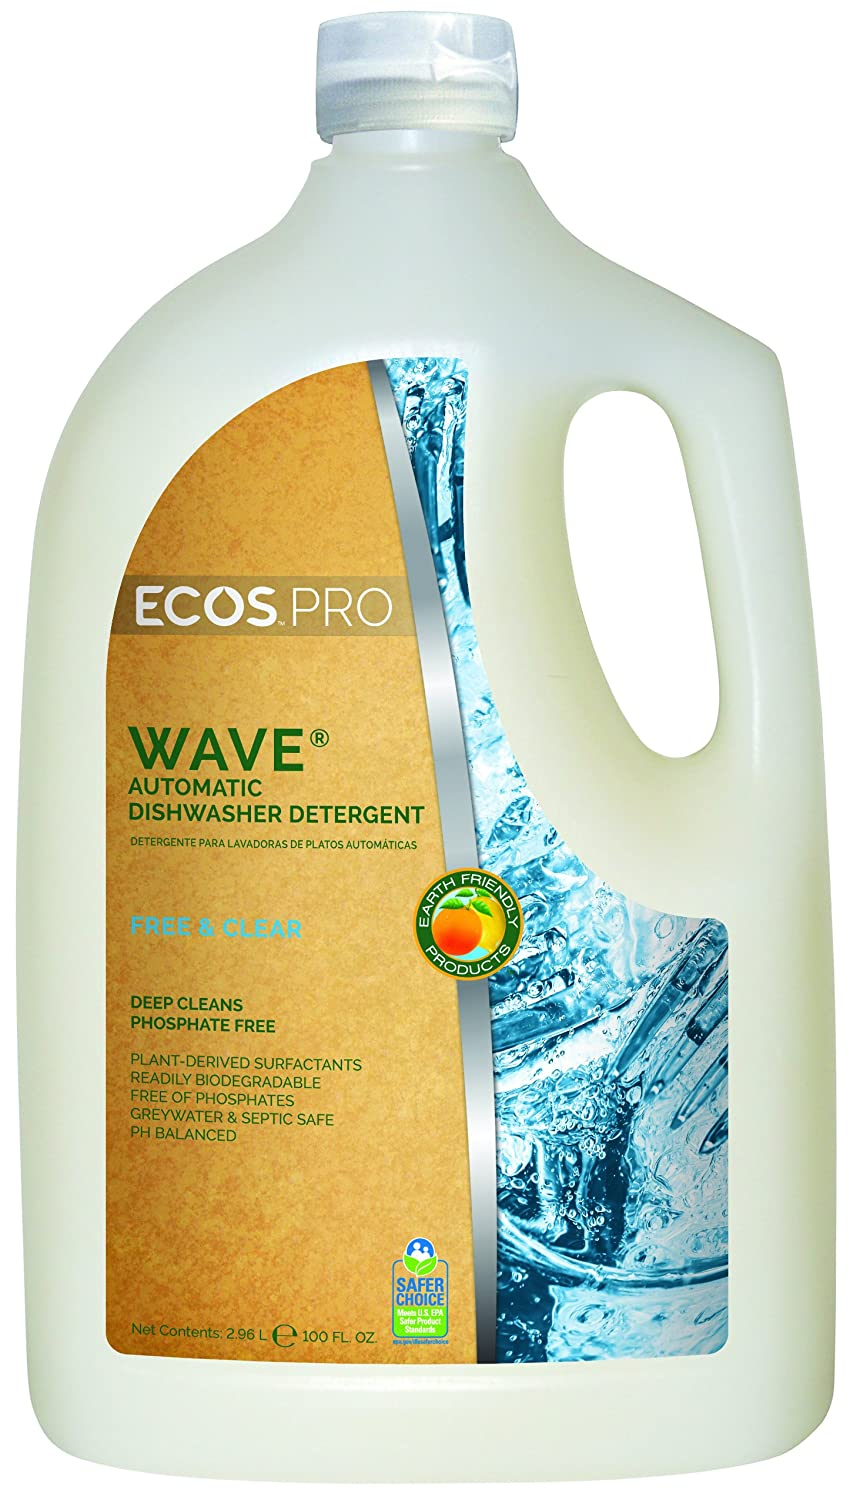 Amazon.com: Ecos Pro pl9365/04 Wave – auto-dishwasher ...